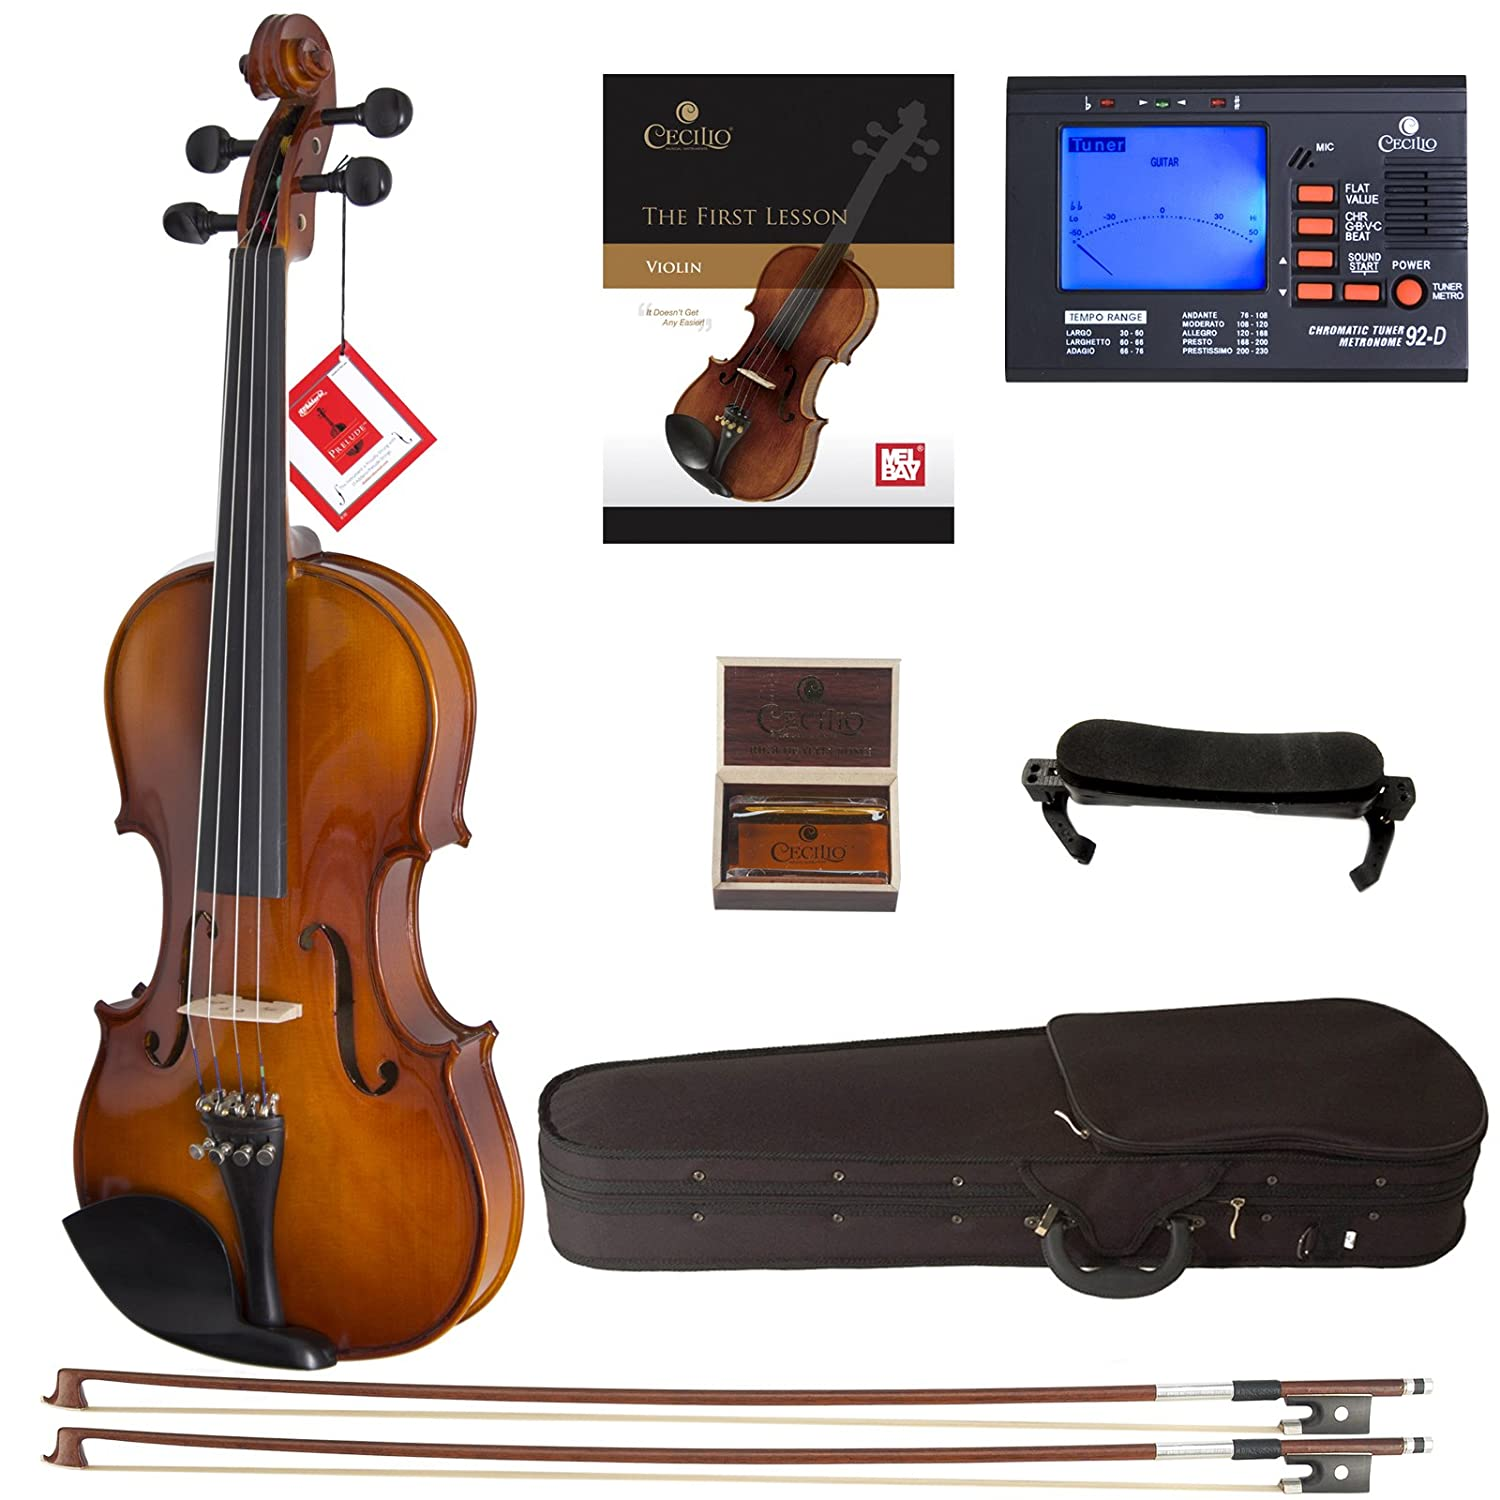 Cecilio CVN-300 Solidwood Ebony Fitted Violin with D'Addario Prelude Strings, Size 4/4 (Full Size) Cecilio Musical Instruments DA_4/4CVN-300+SR+92D+FB1